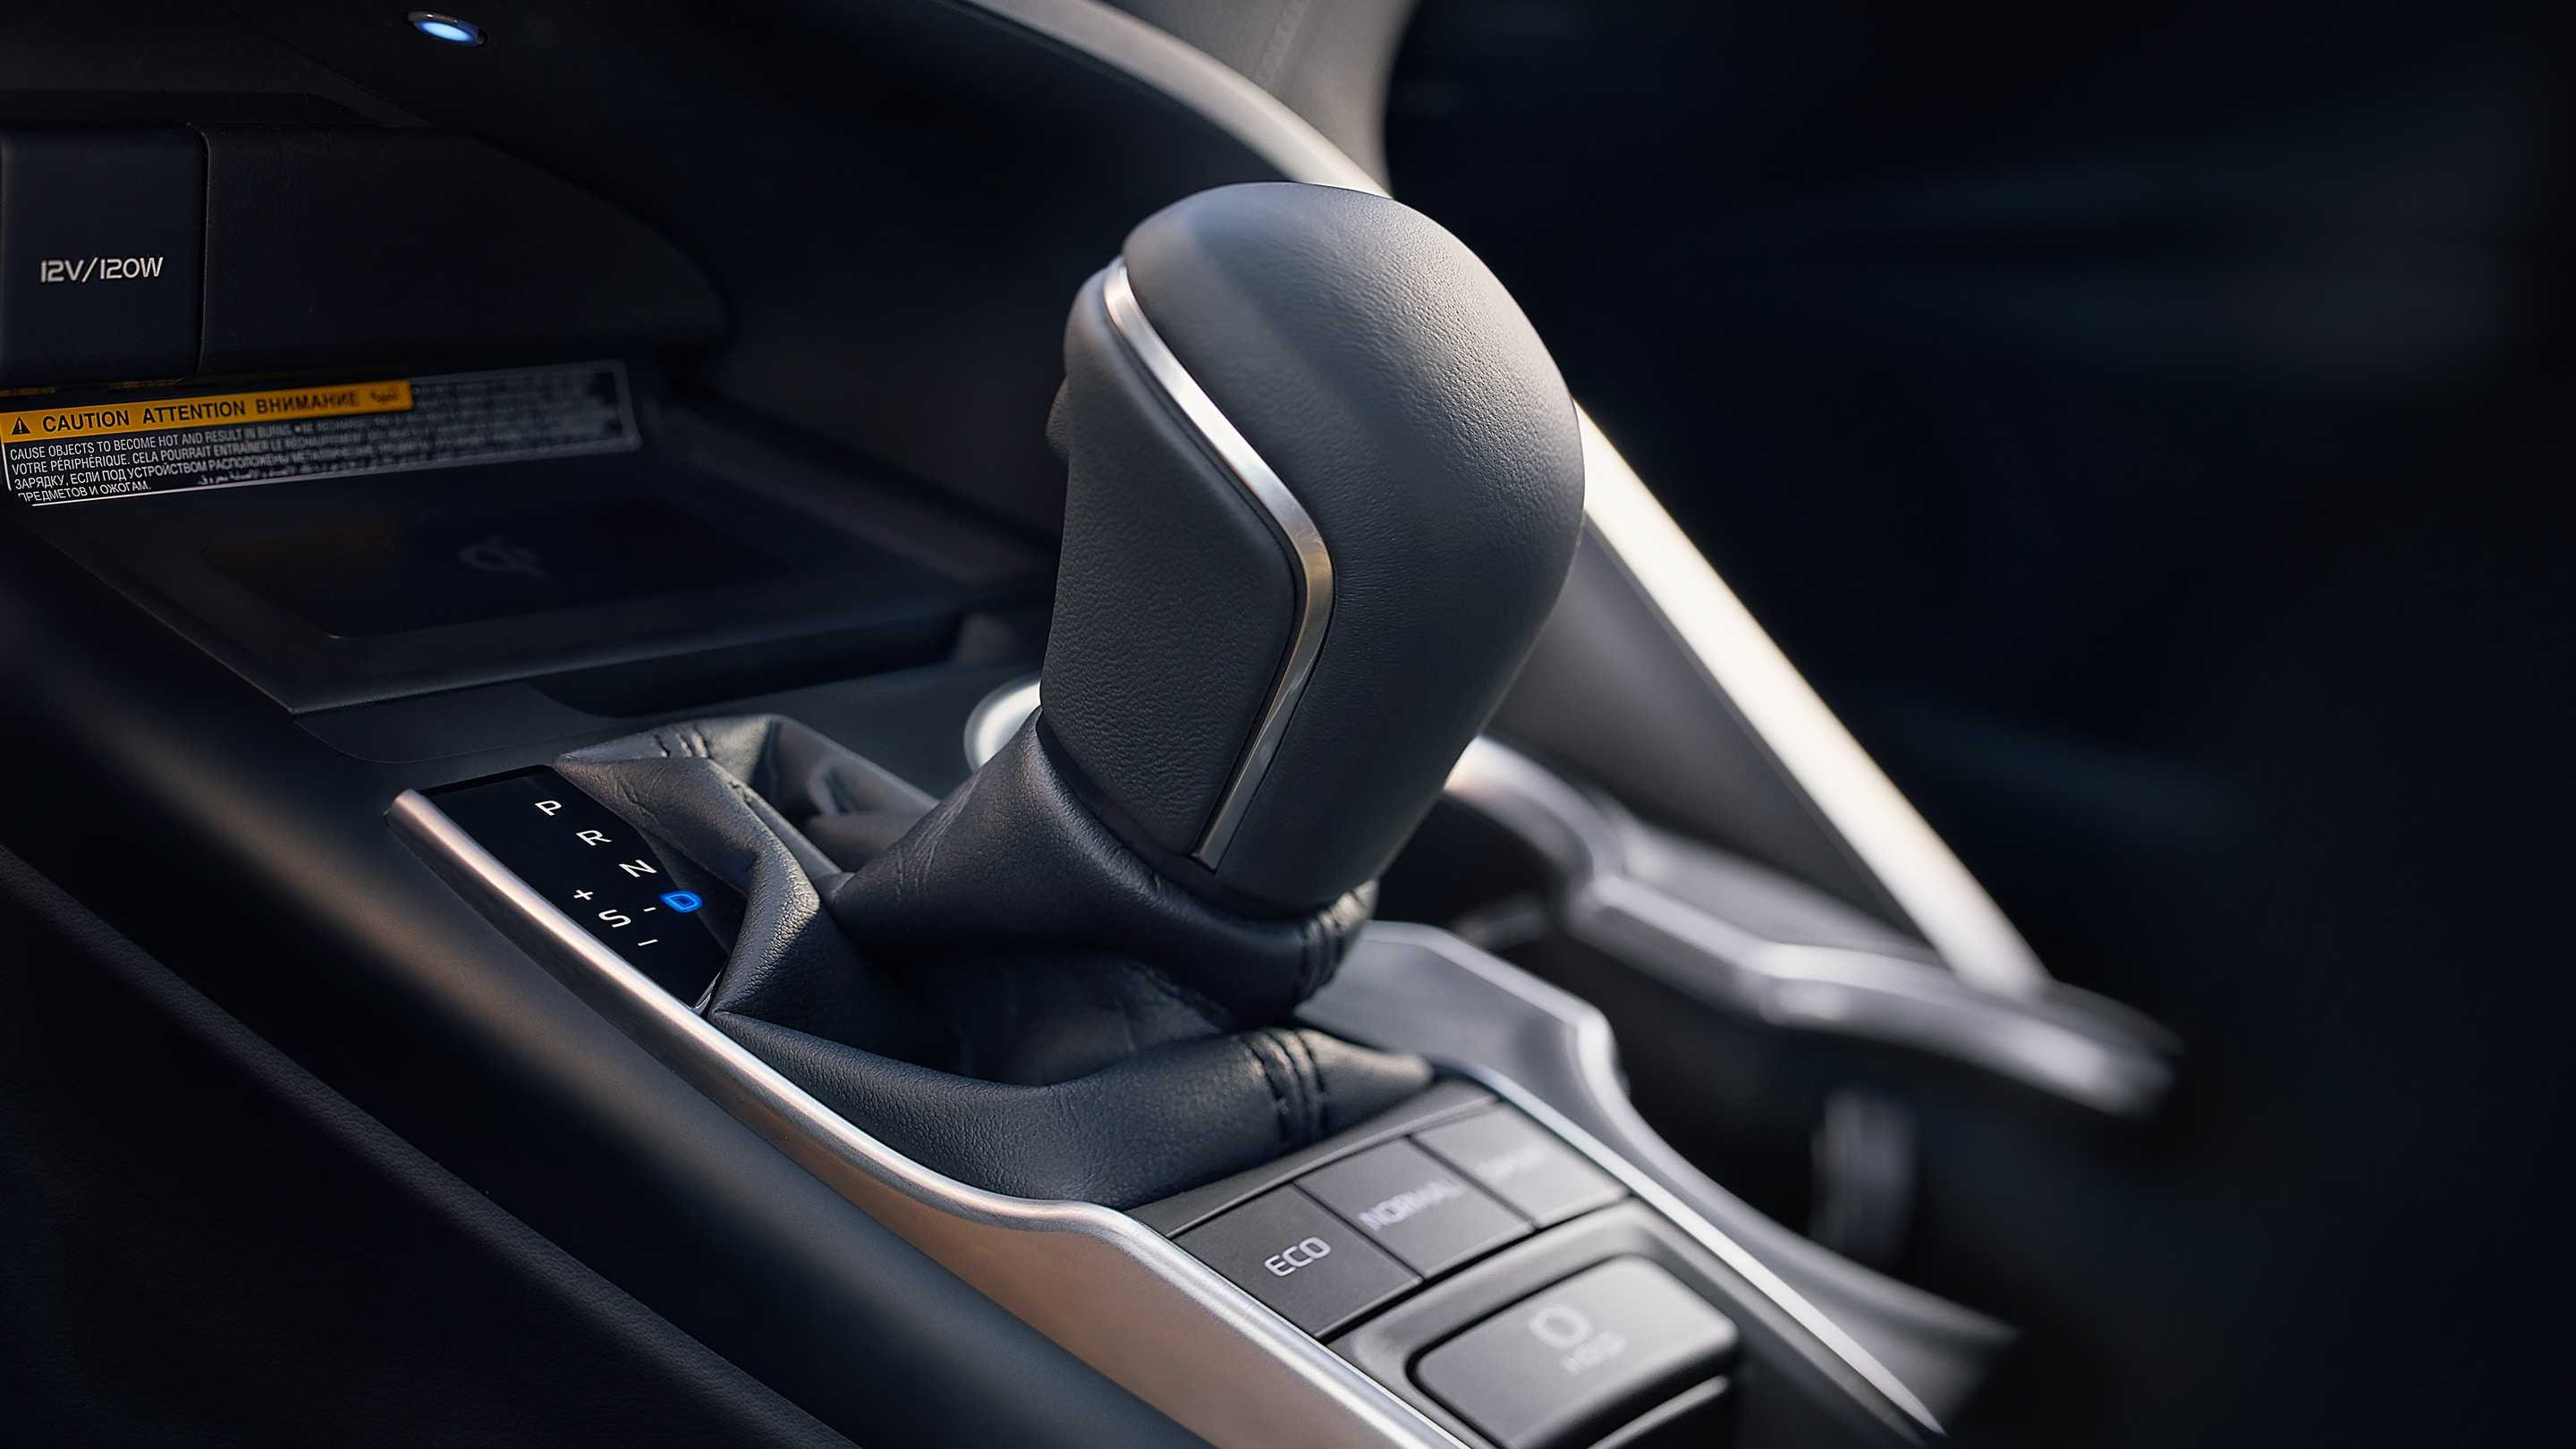 Gear Selector in the 2019 Camry